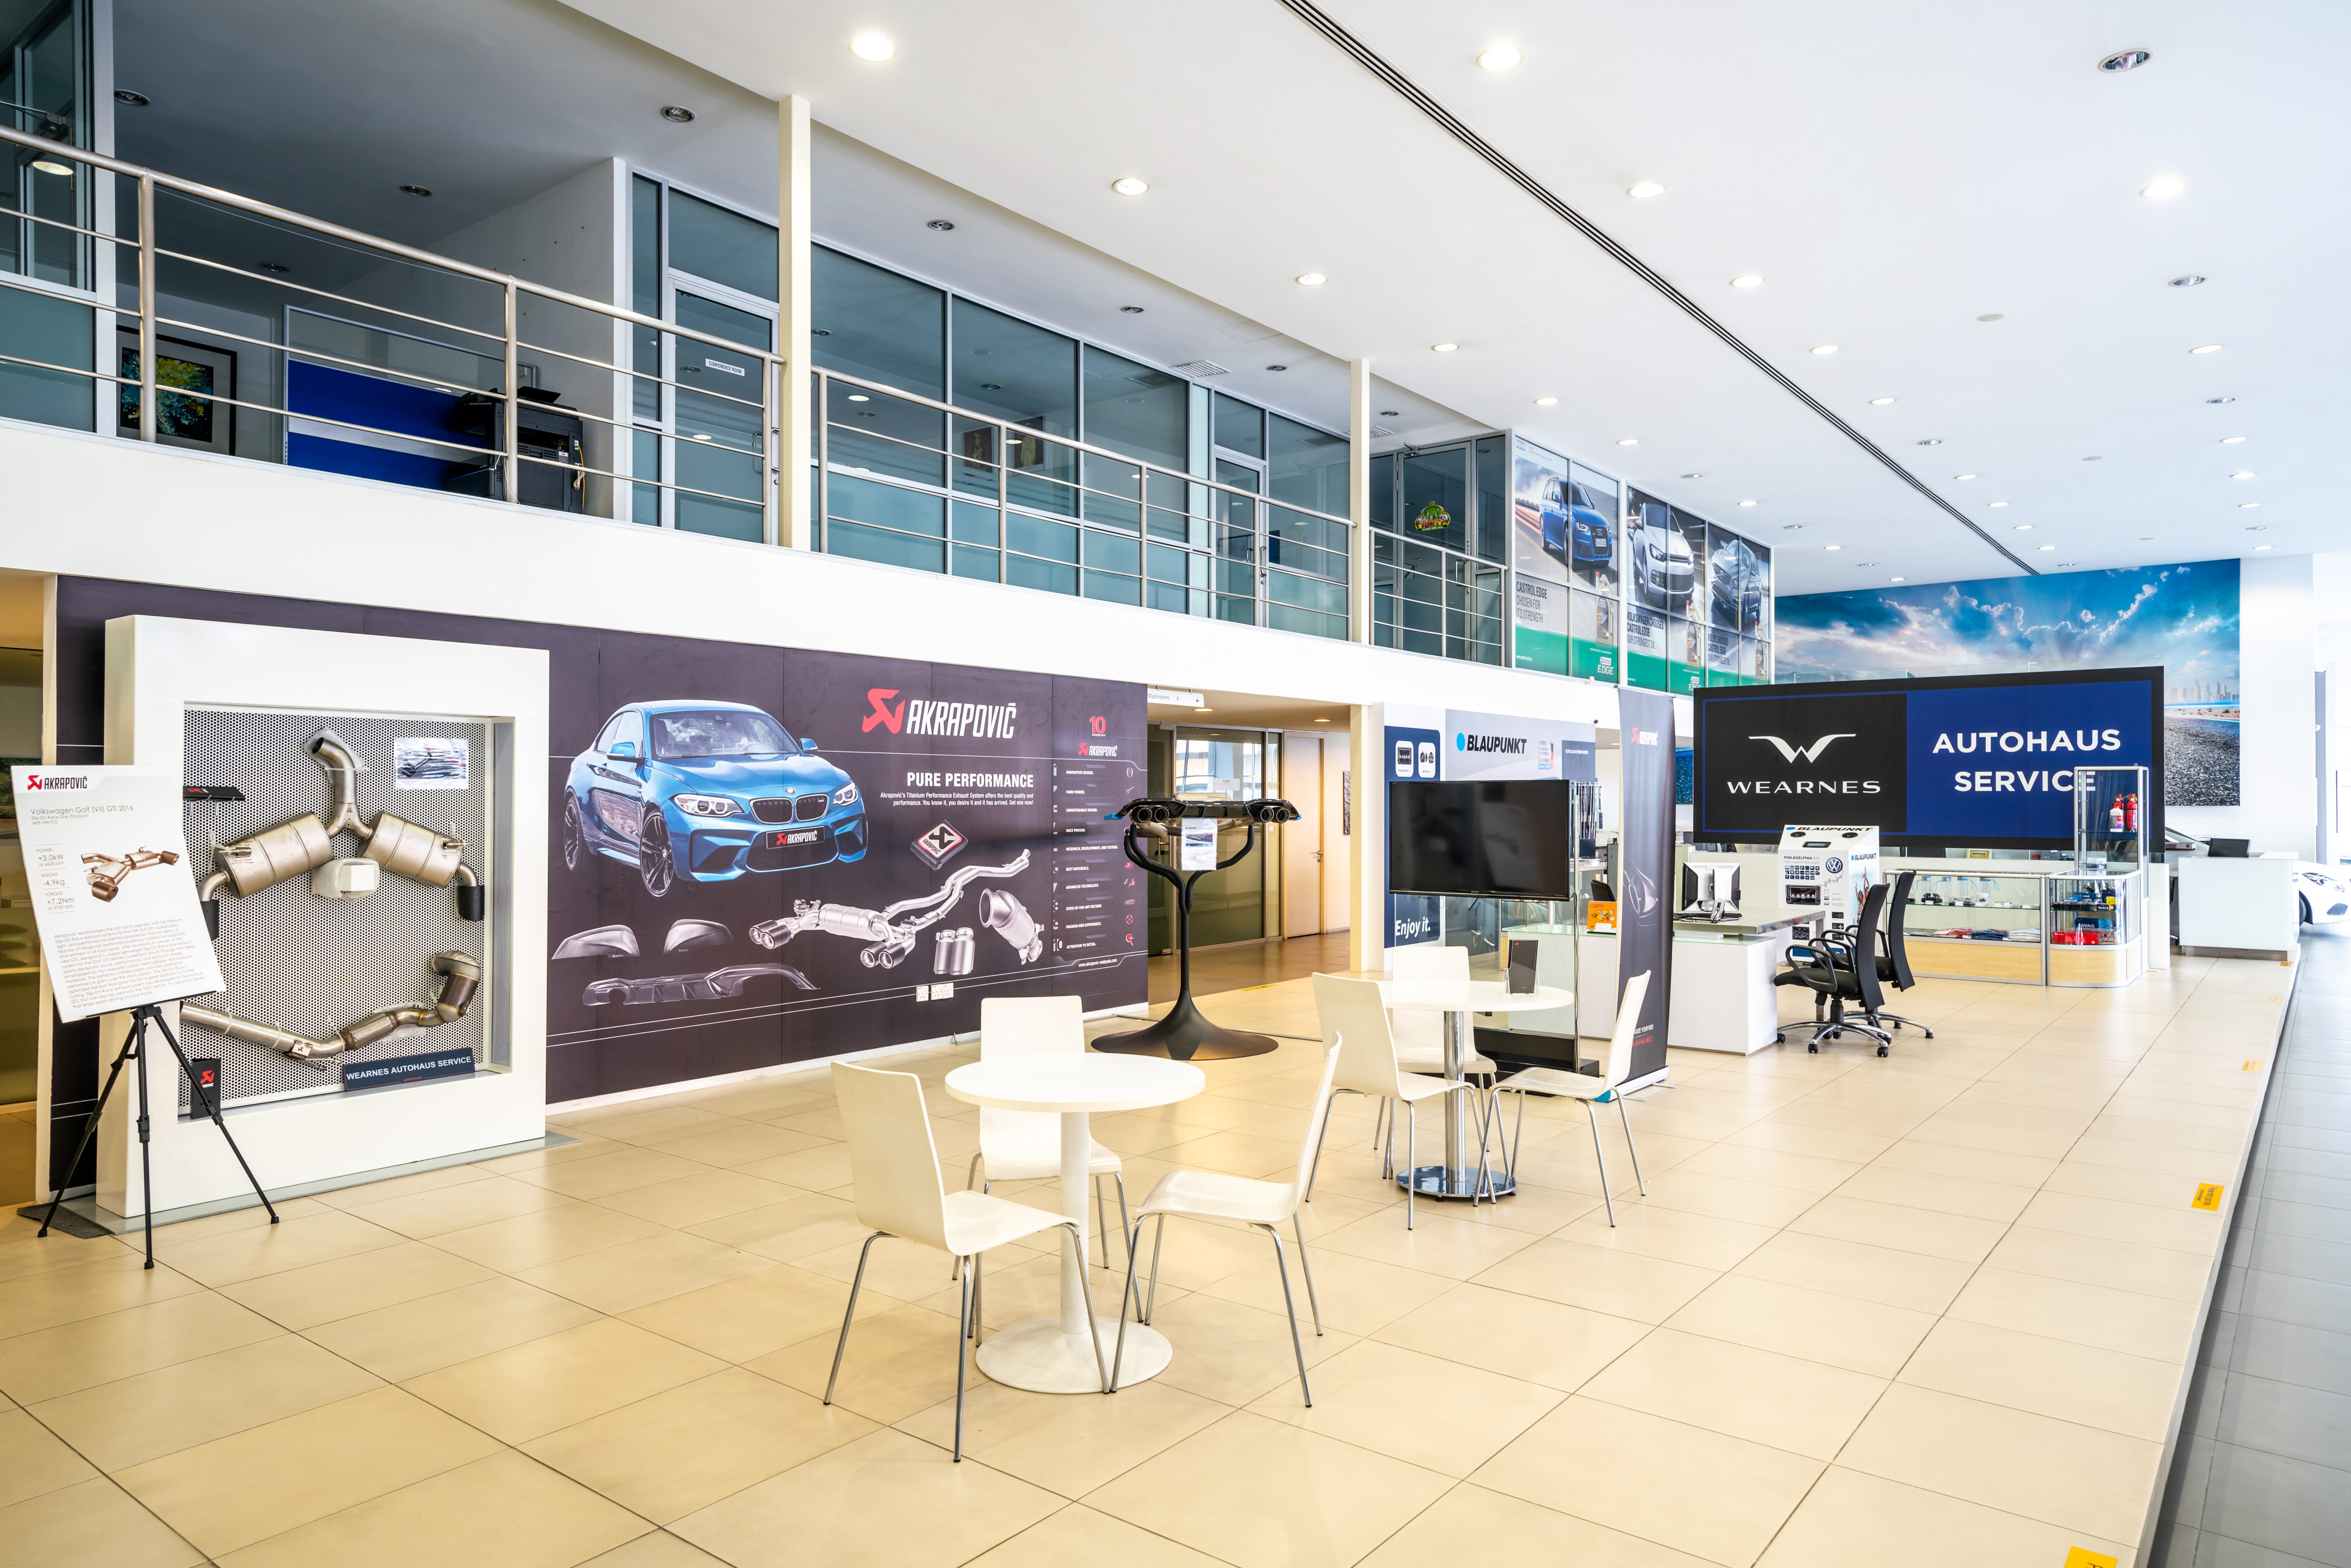 Wearnes autohaus independent one stop 4s car service centre videos wearnes autohaus located in segambut kl is an independent 4s service centre and might just be the place youve been looking for in addition to regular car solutioingenieria Gallery